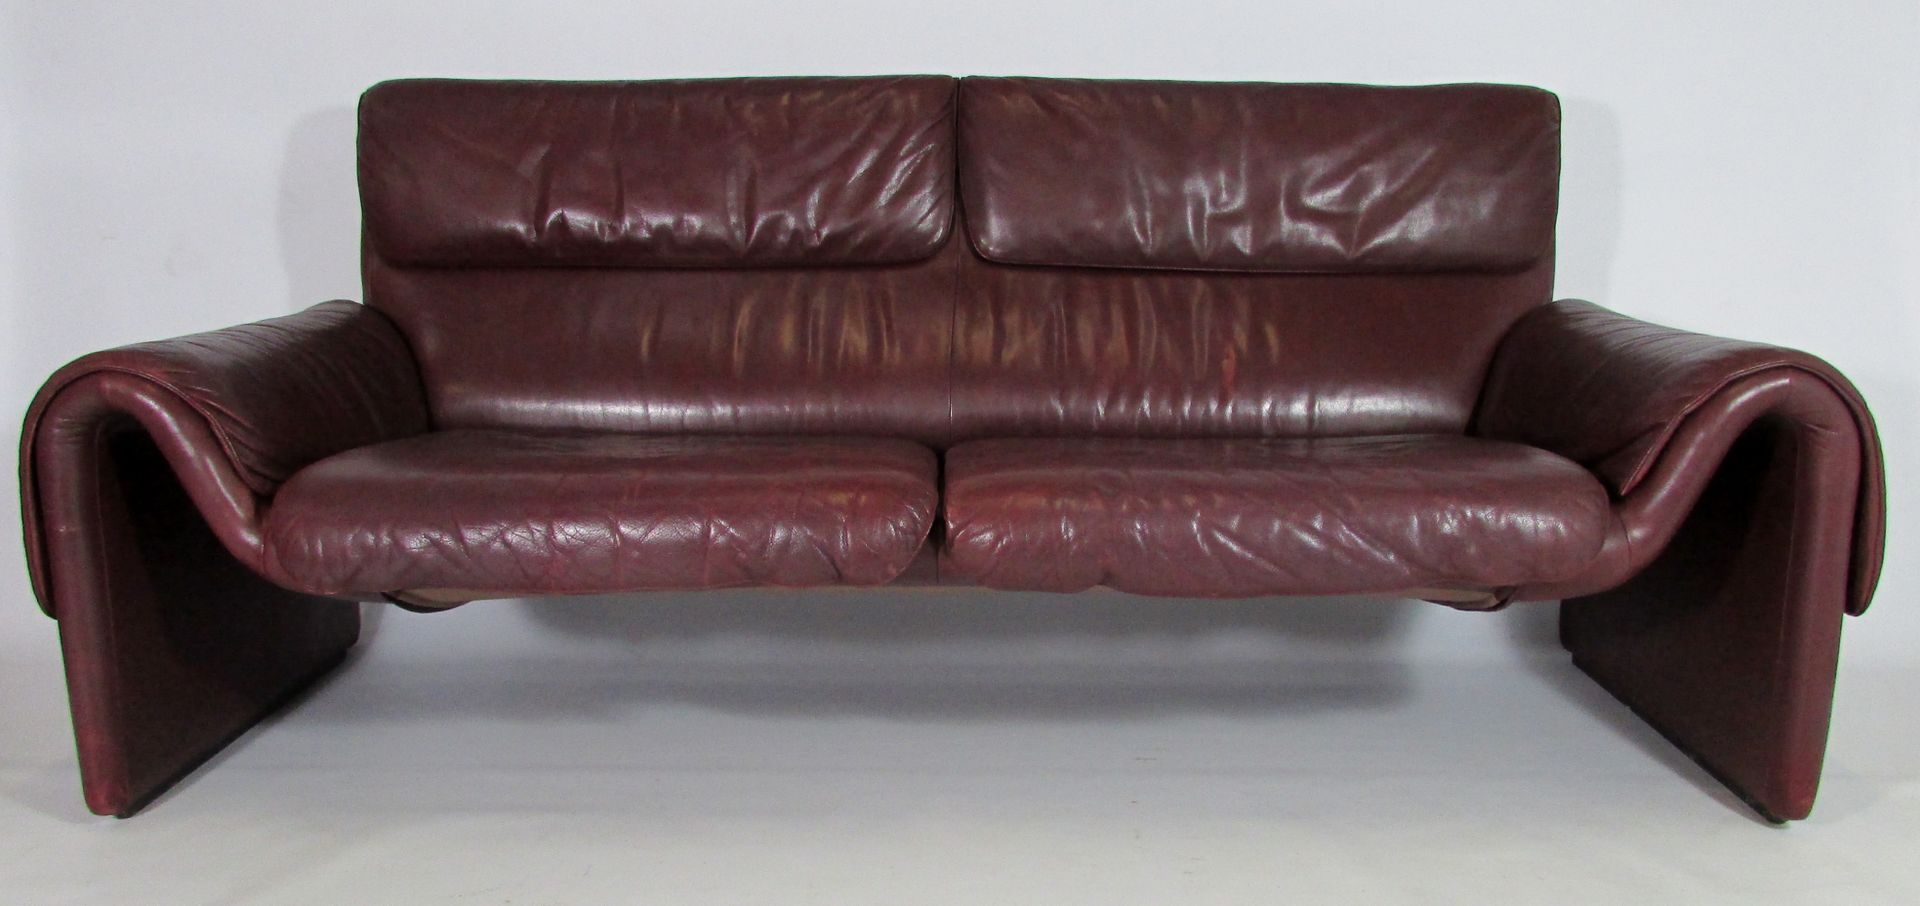 ds 2011 sofa from de sede 1980s for sale at pamono. Black Bedroom Furniture Sets. Home Design Ideas